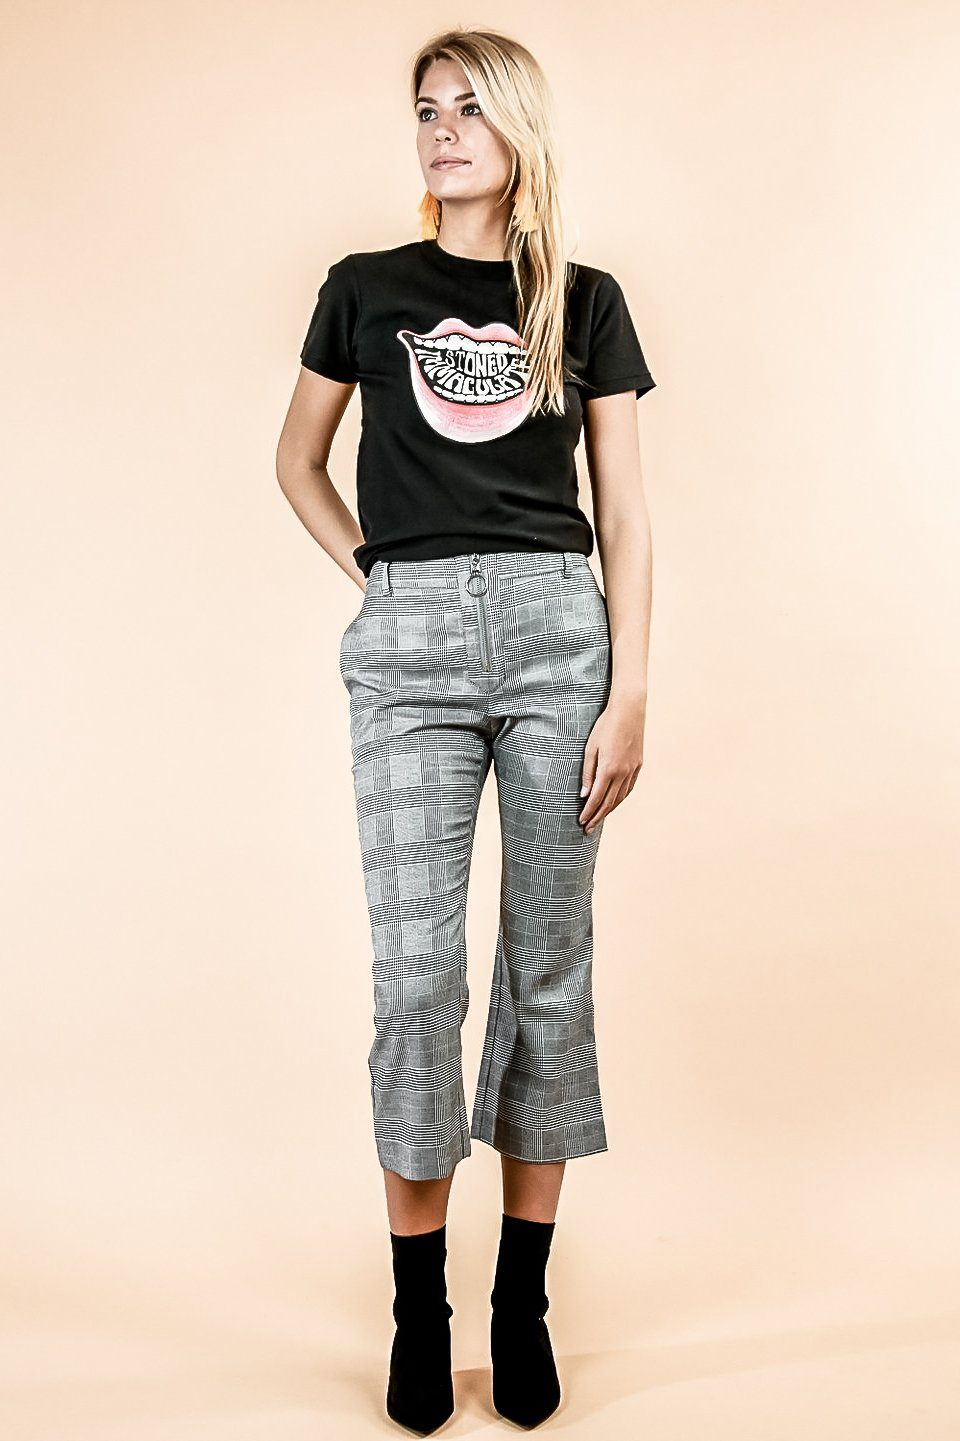 PORTMAN GREY PLAID ZIPPER SLIM FIT CAPRI TROUSER PANT